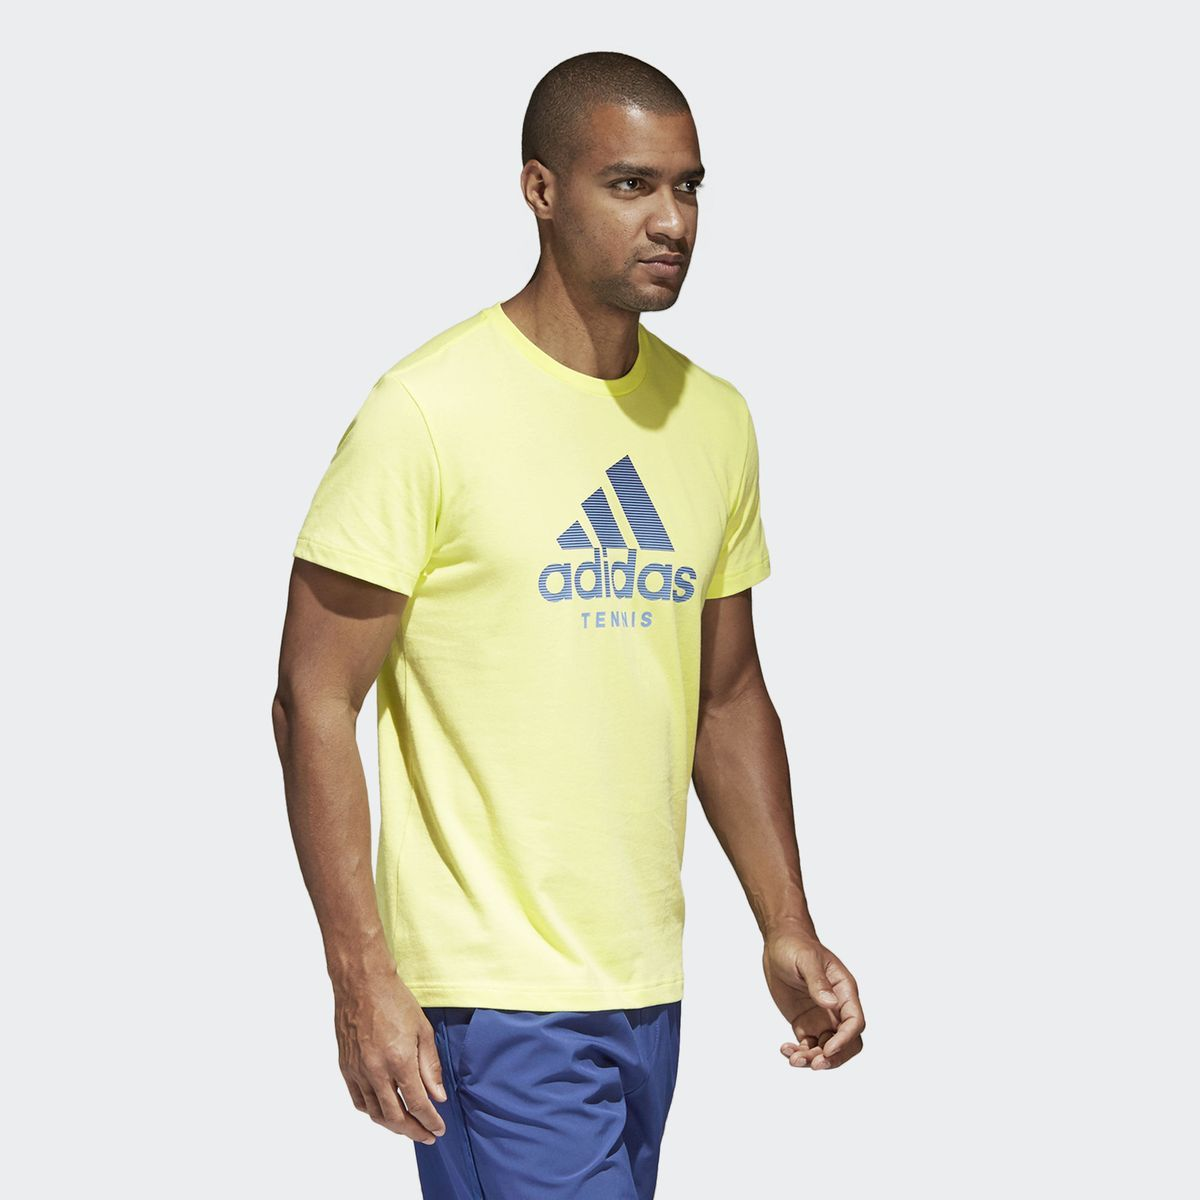 ShirtLogo T Tennis Et Category TailleXsProducts Shirt kZiOuPXT